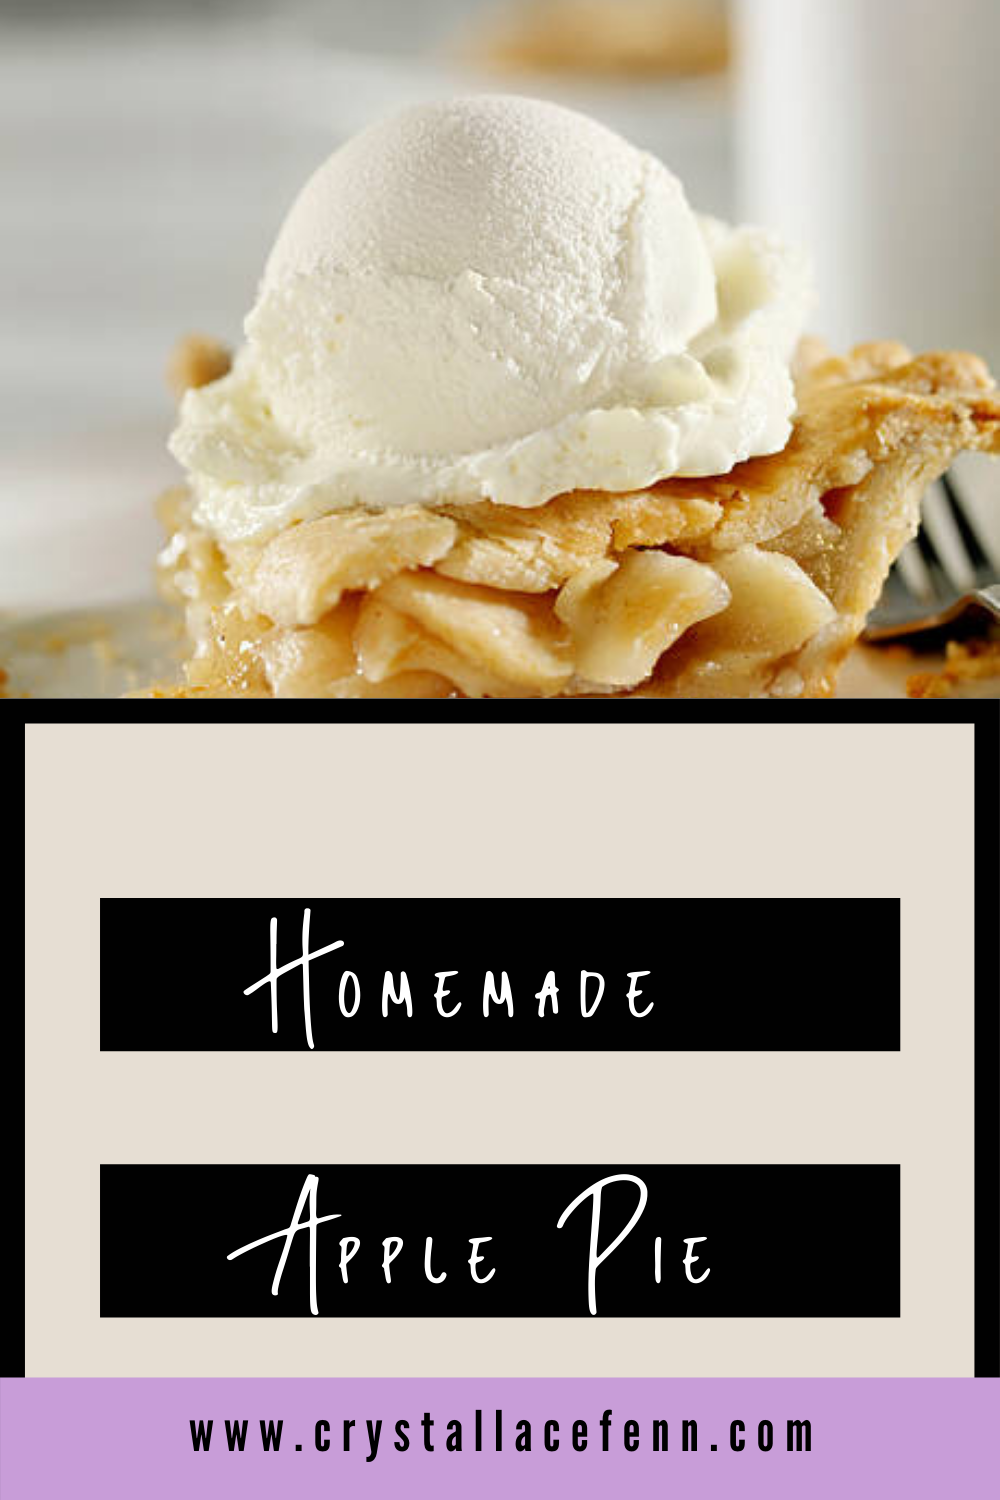 The Best Apple Pie Recipe In The World for Homemade Apple Pie